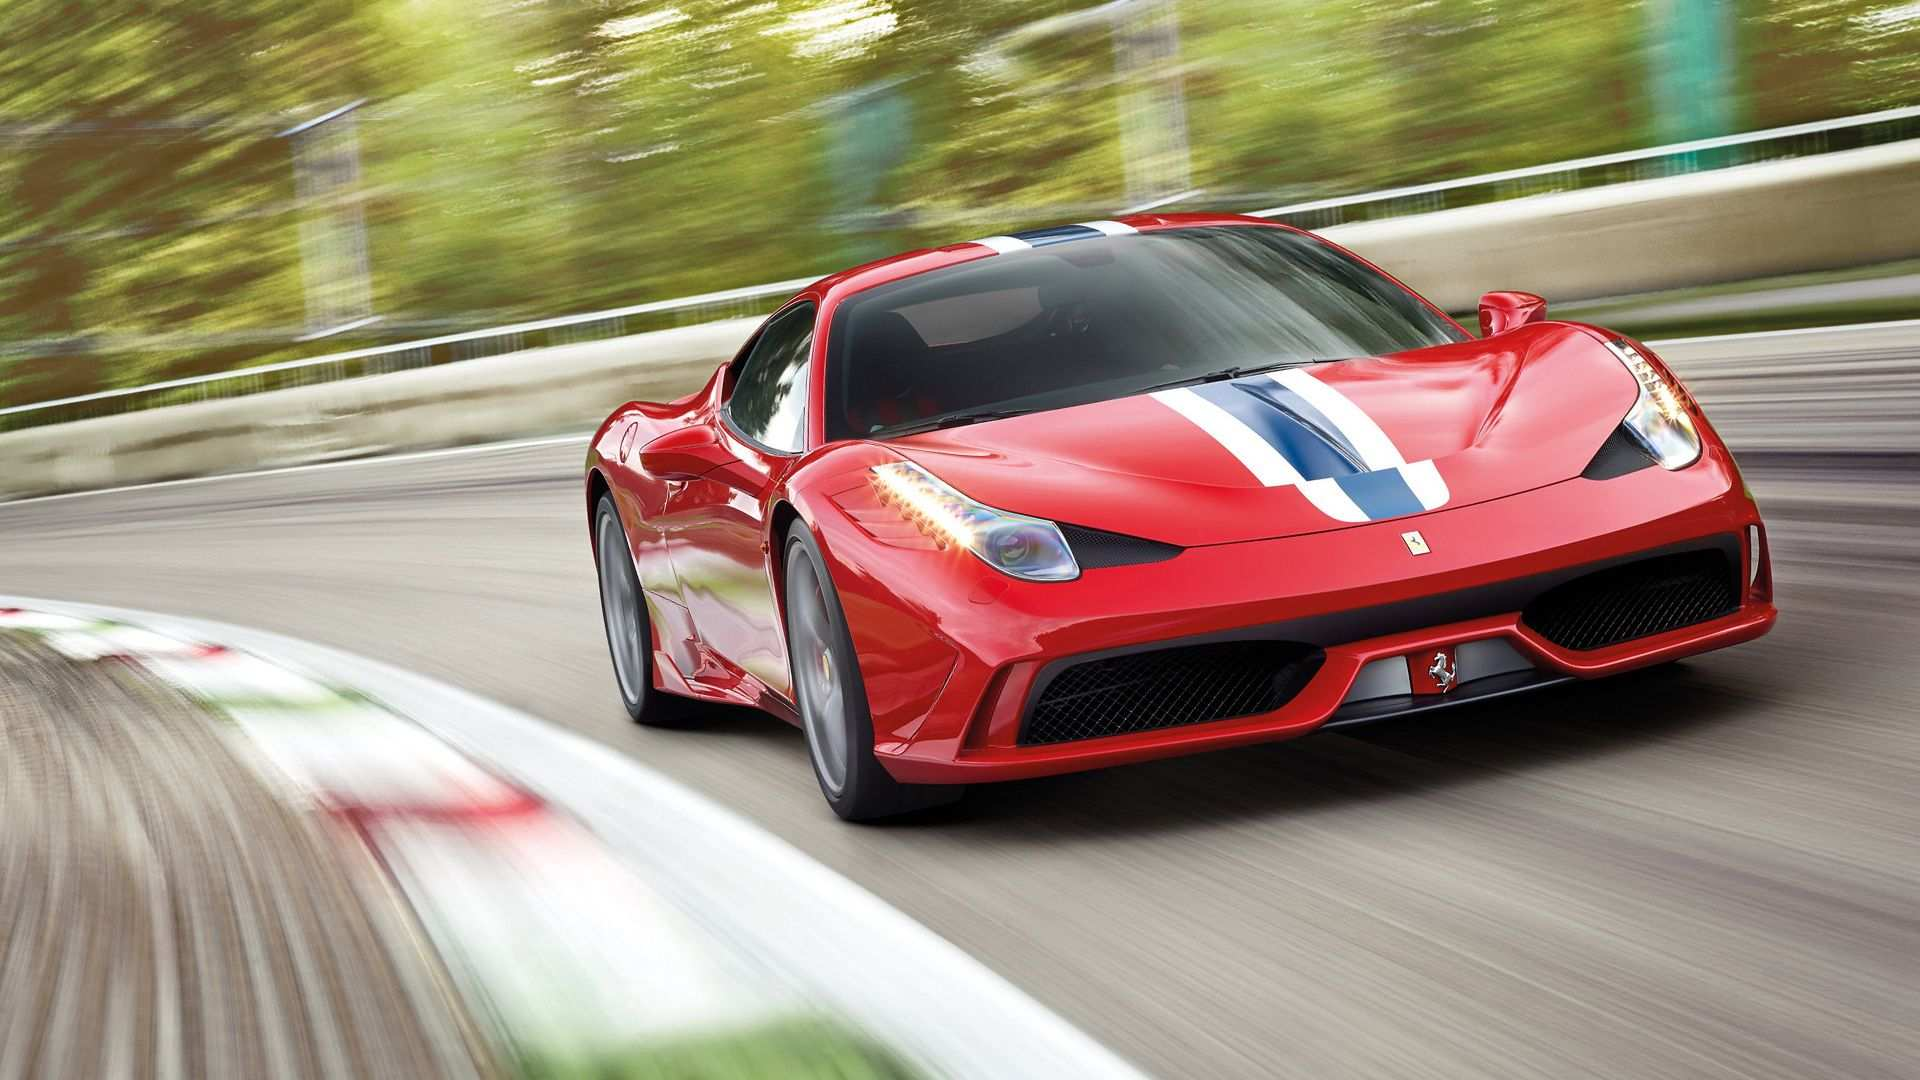 59 Great The La Nuova Ferrari 2019 First Drive Overview by The La Nuova Ferrari 2019 First Drive